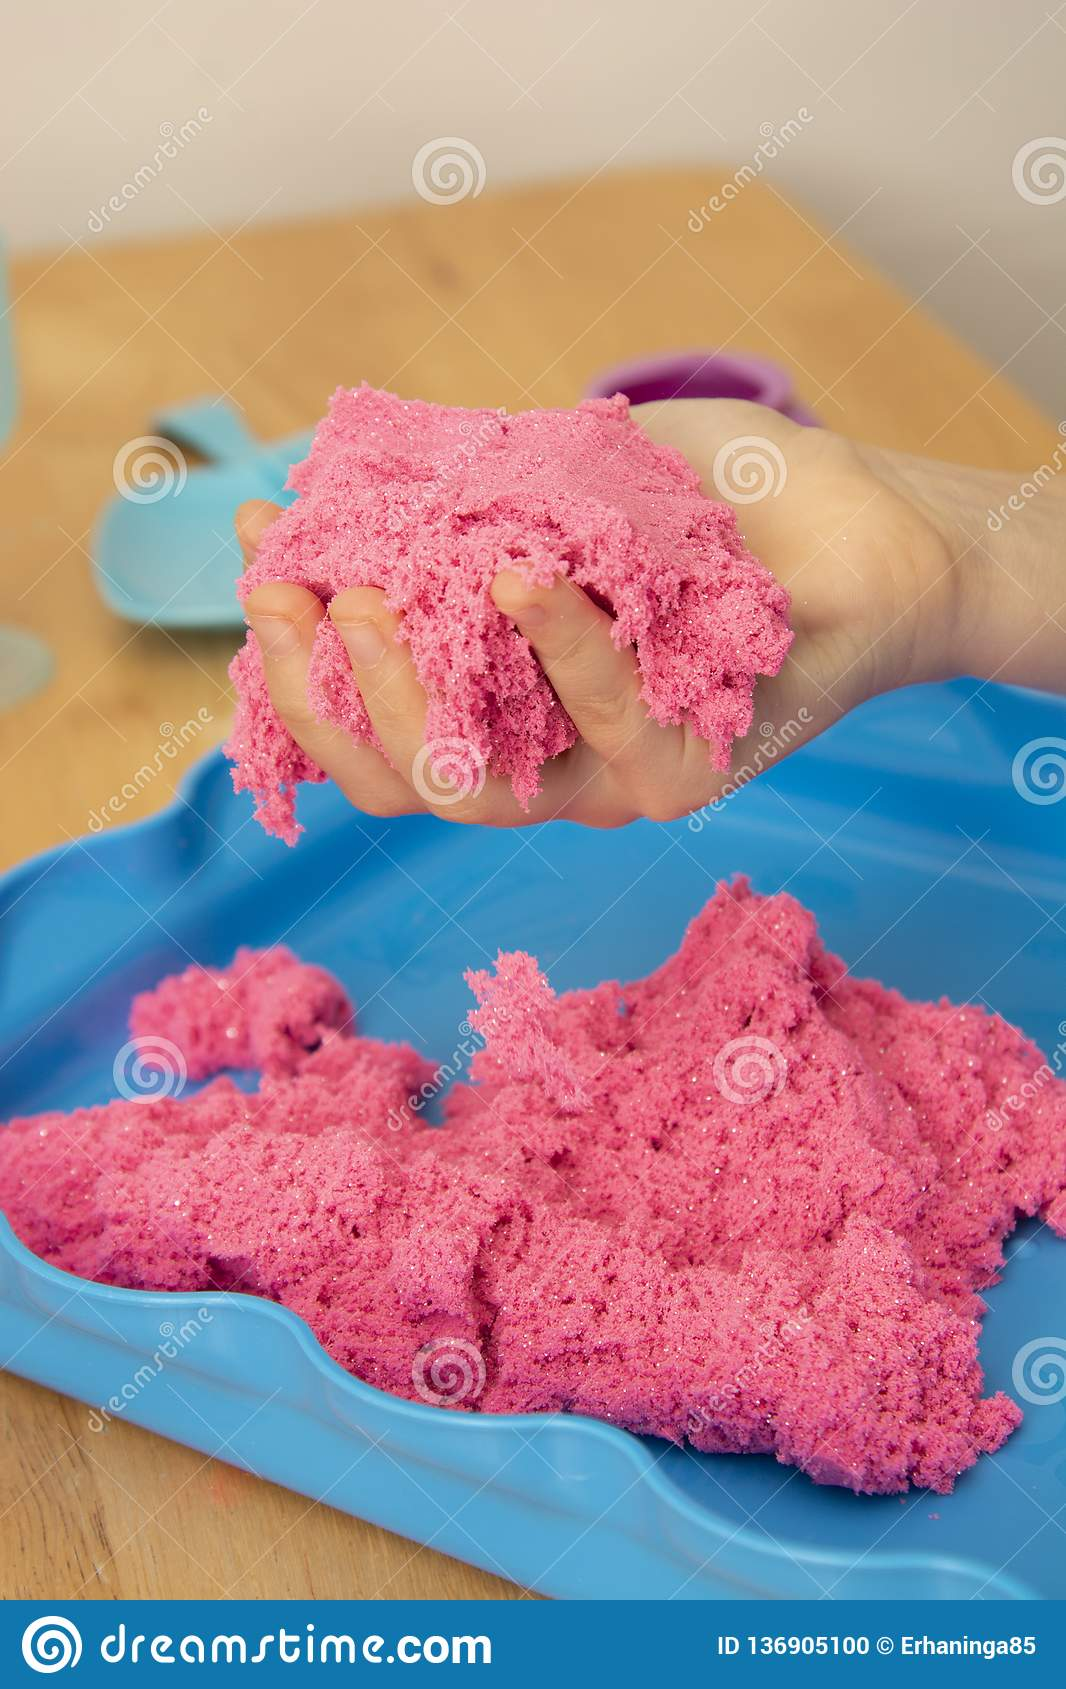 Creative play for children. Education and parenting. Children playing with pink kinetik sand